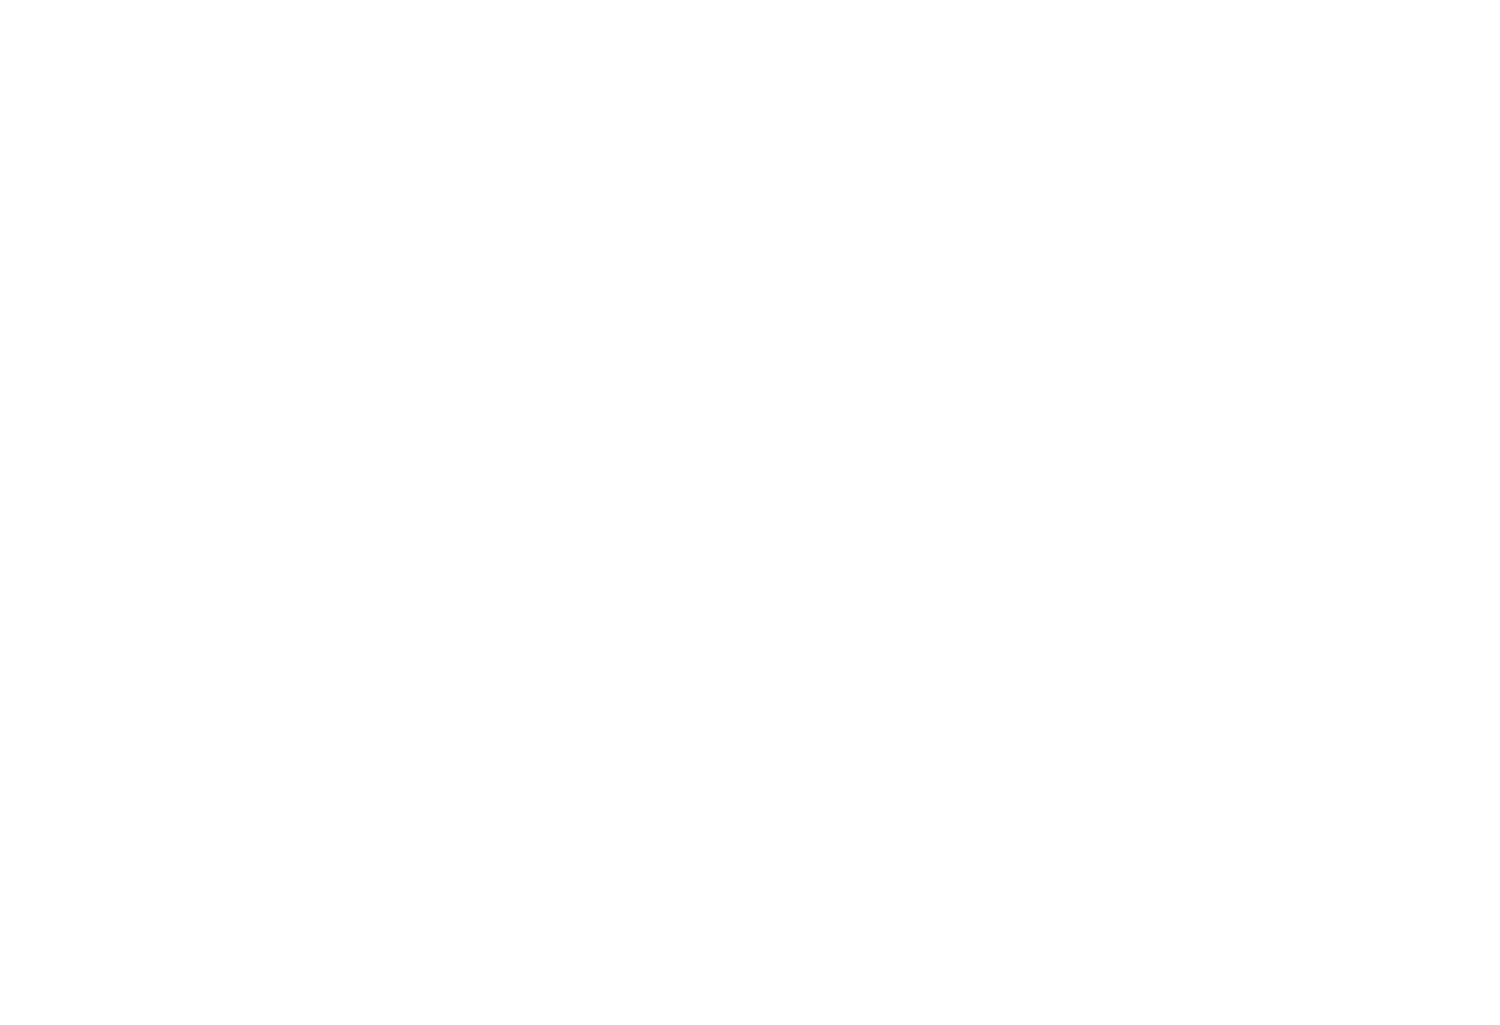 BEELNE HEALTHCARE